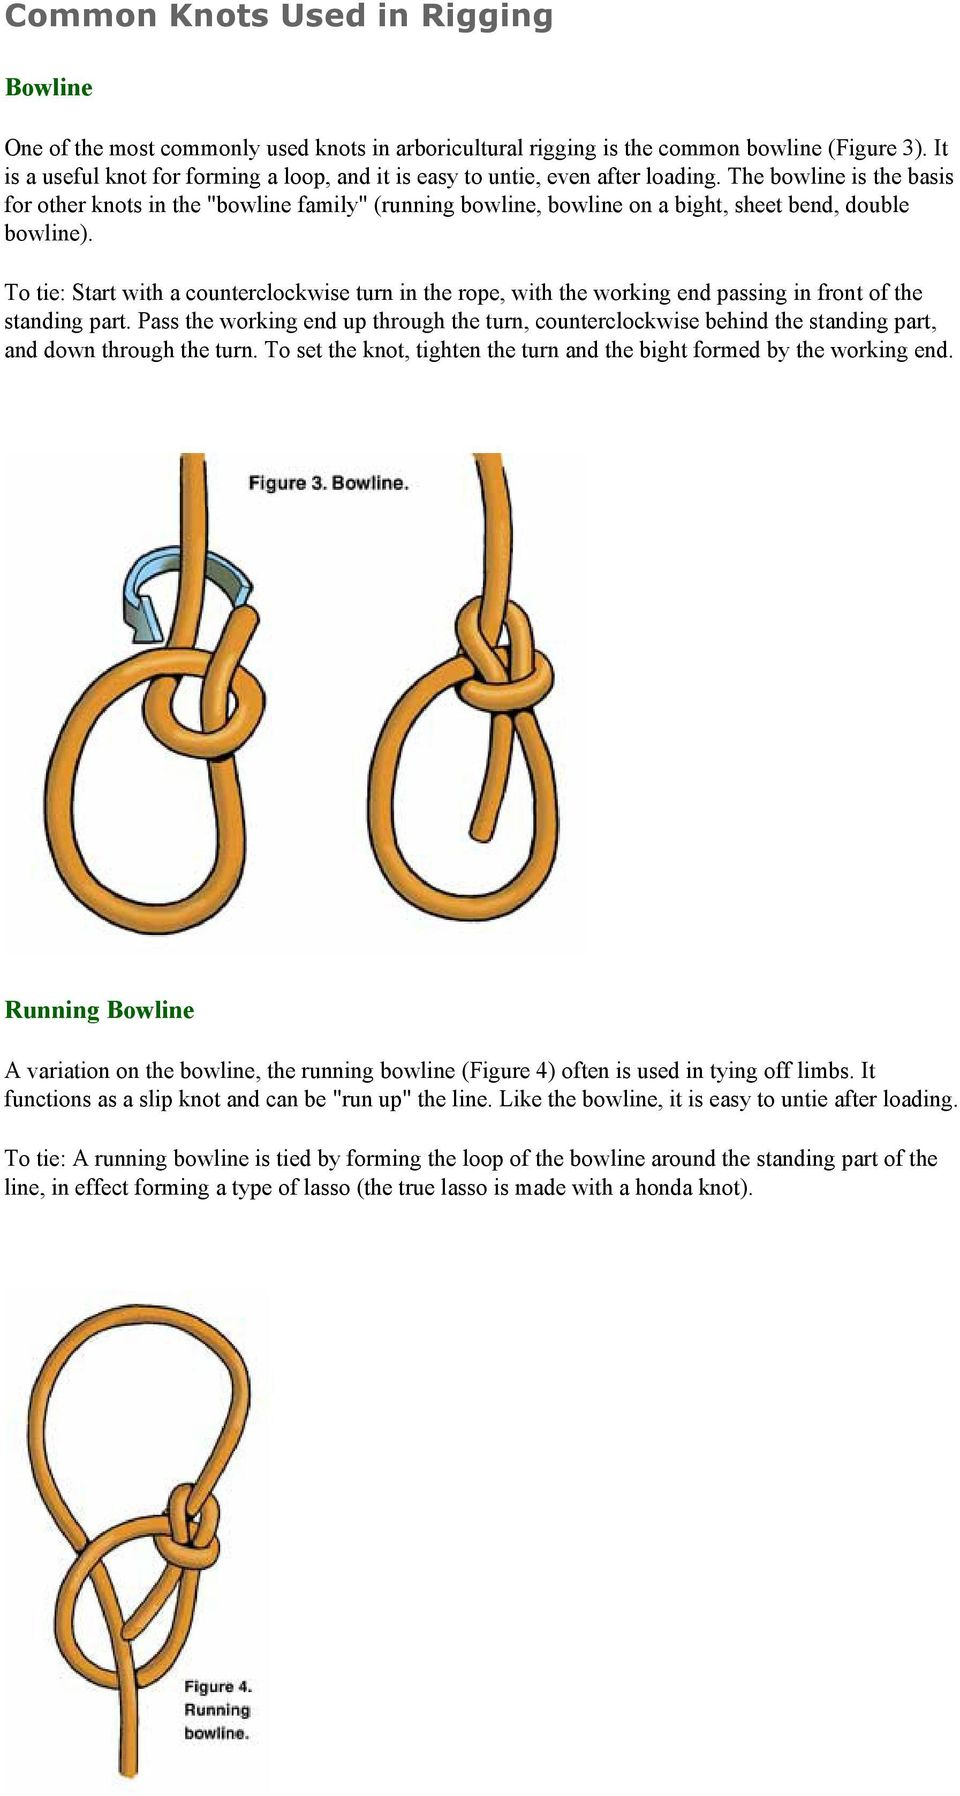 "The bowline is the basis for other knots in the ""bowline family"" (running bowline, bowline on a bight, sheet bend, double bowline)."